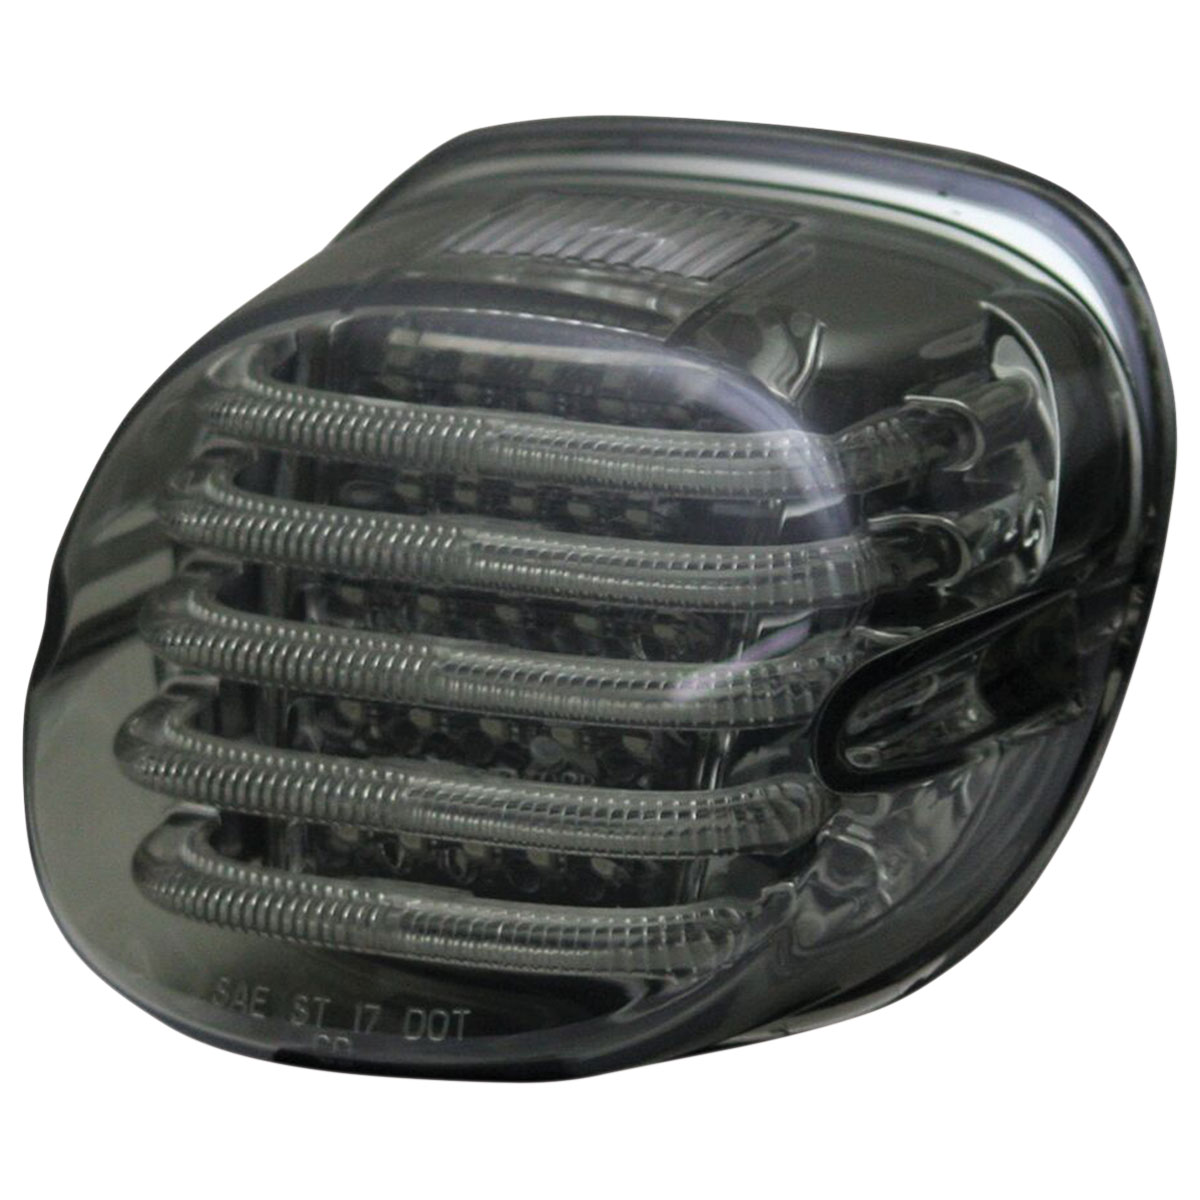 Smoke Low Profile LED Taillights w// Tag Lamp For Harley Electra Glide Fat Boy Lo